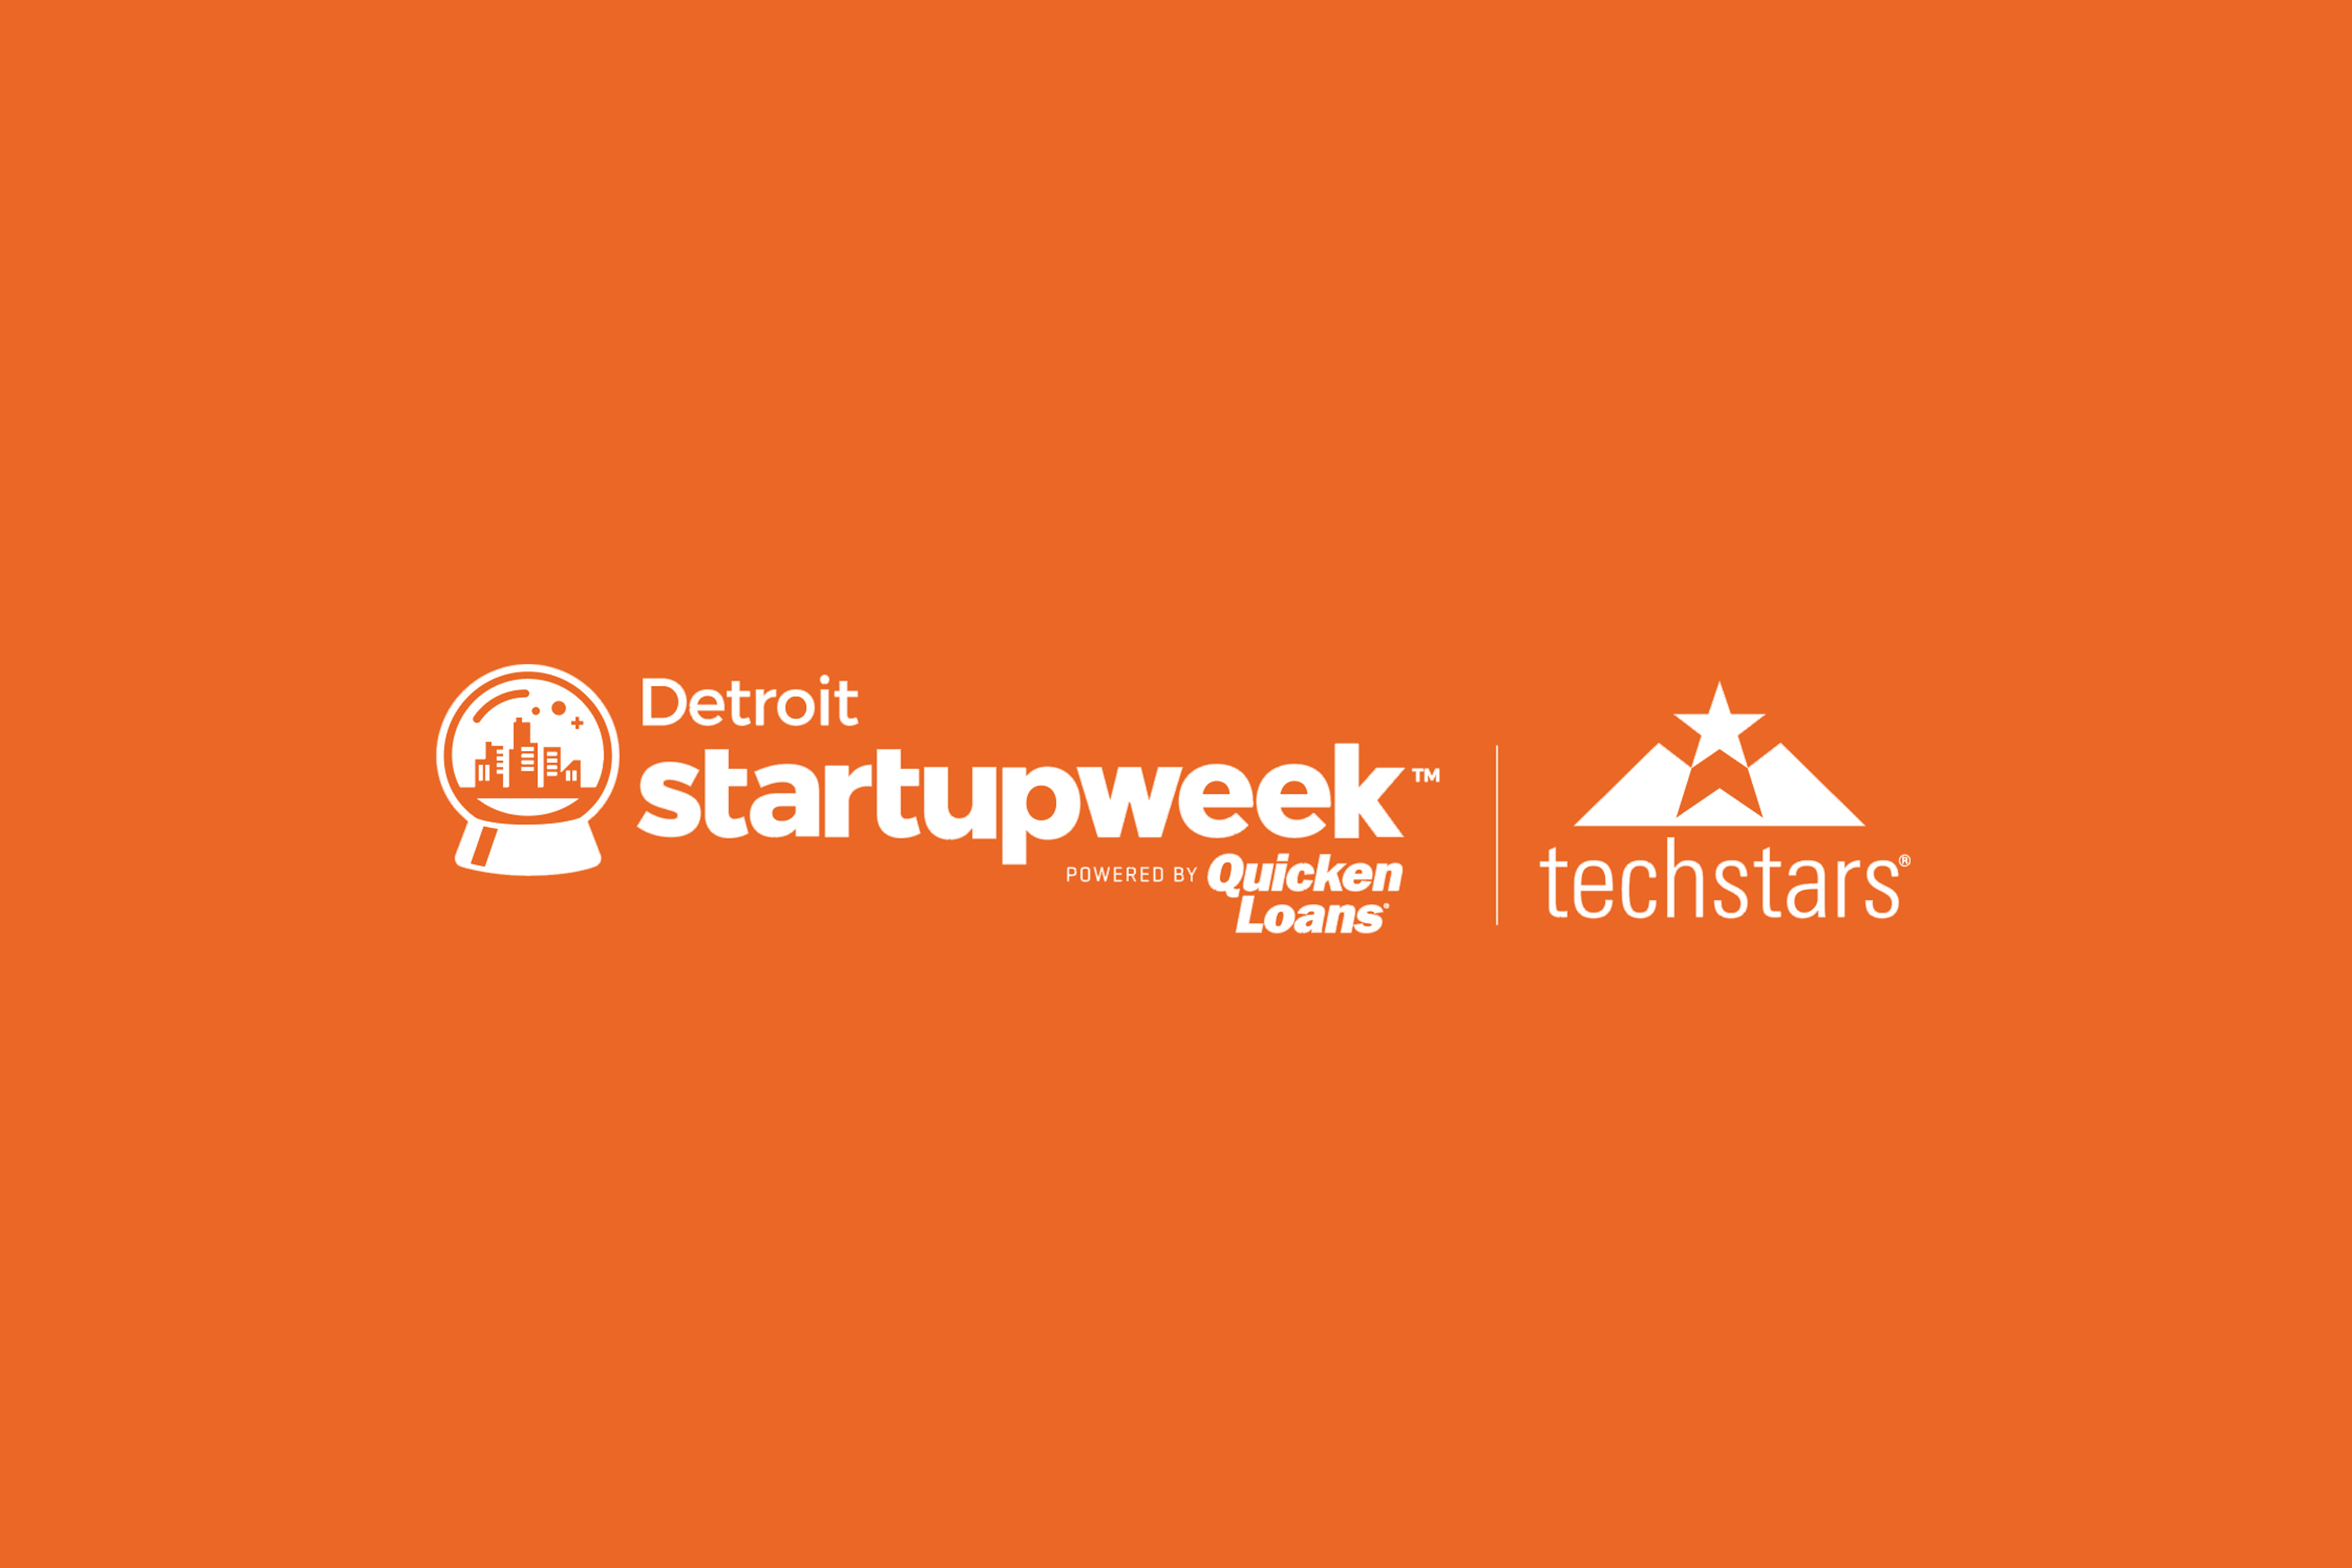 Everything you need to know about Detroit Startup Week